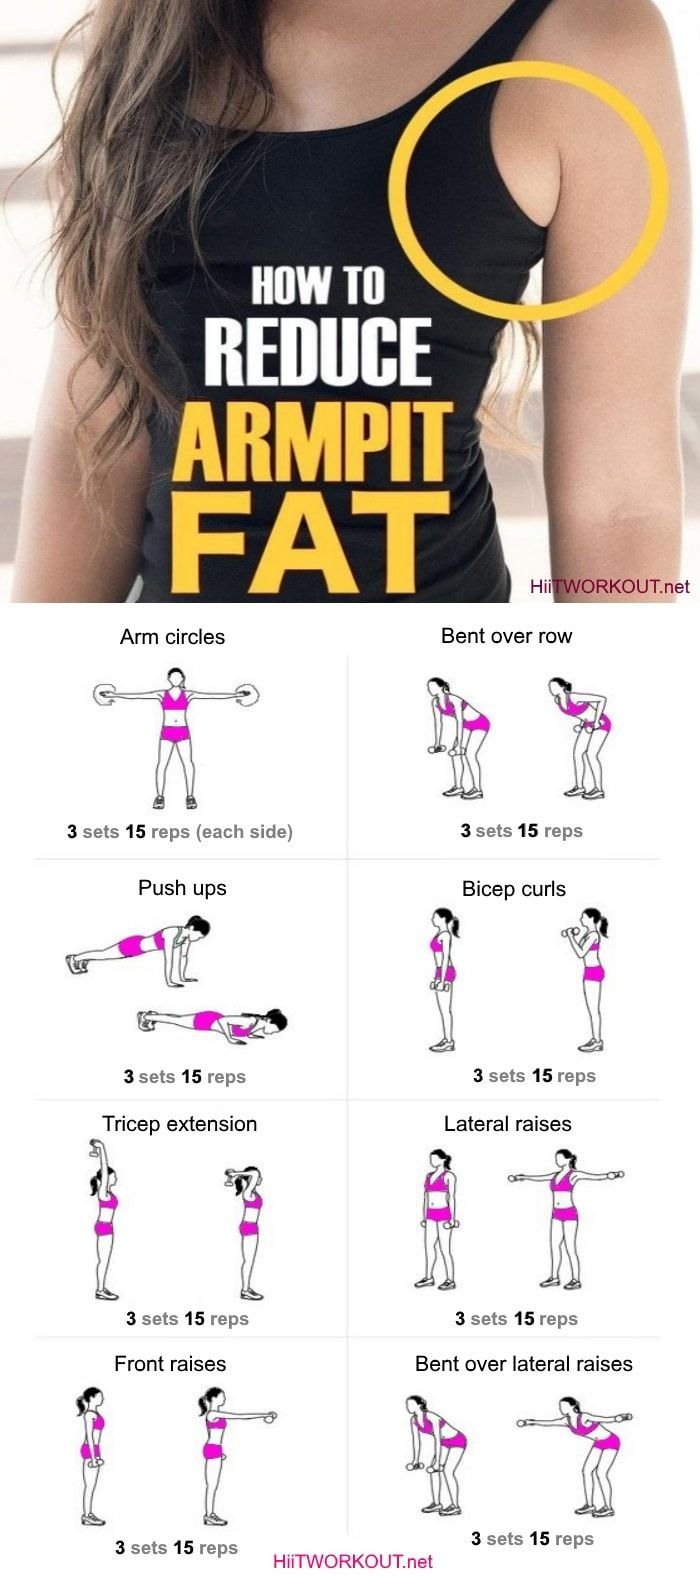 Watch 15 Best Exercises To Reduce Back Fat For Women video